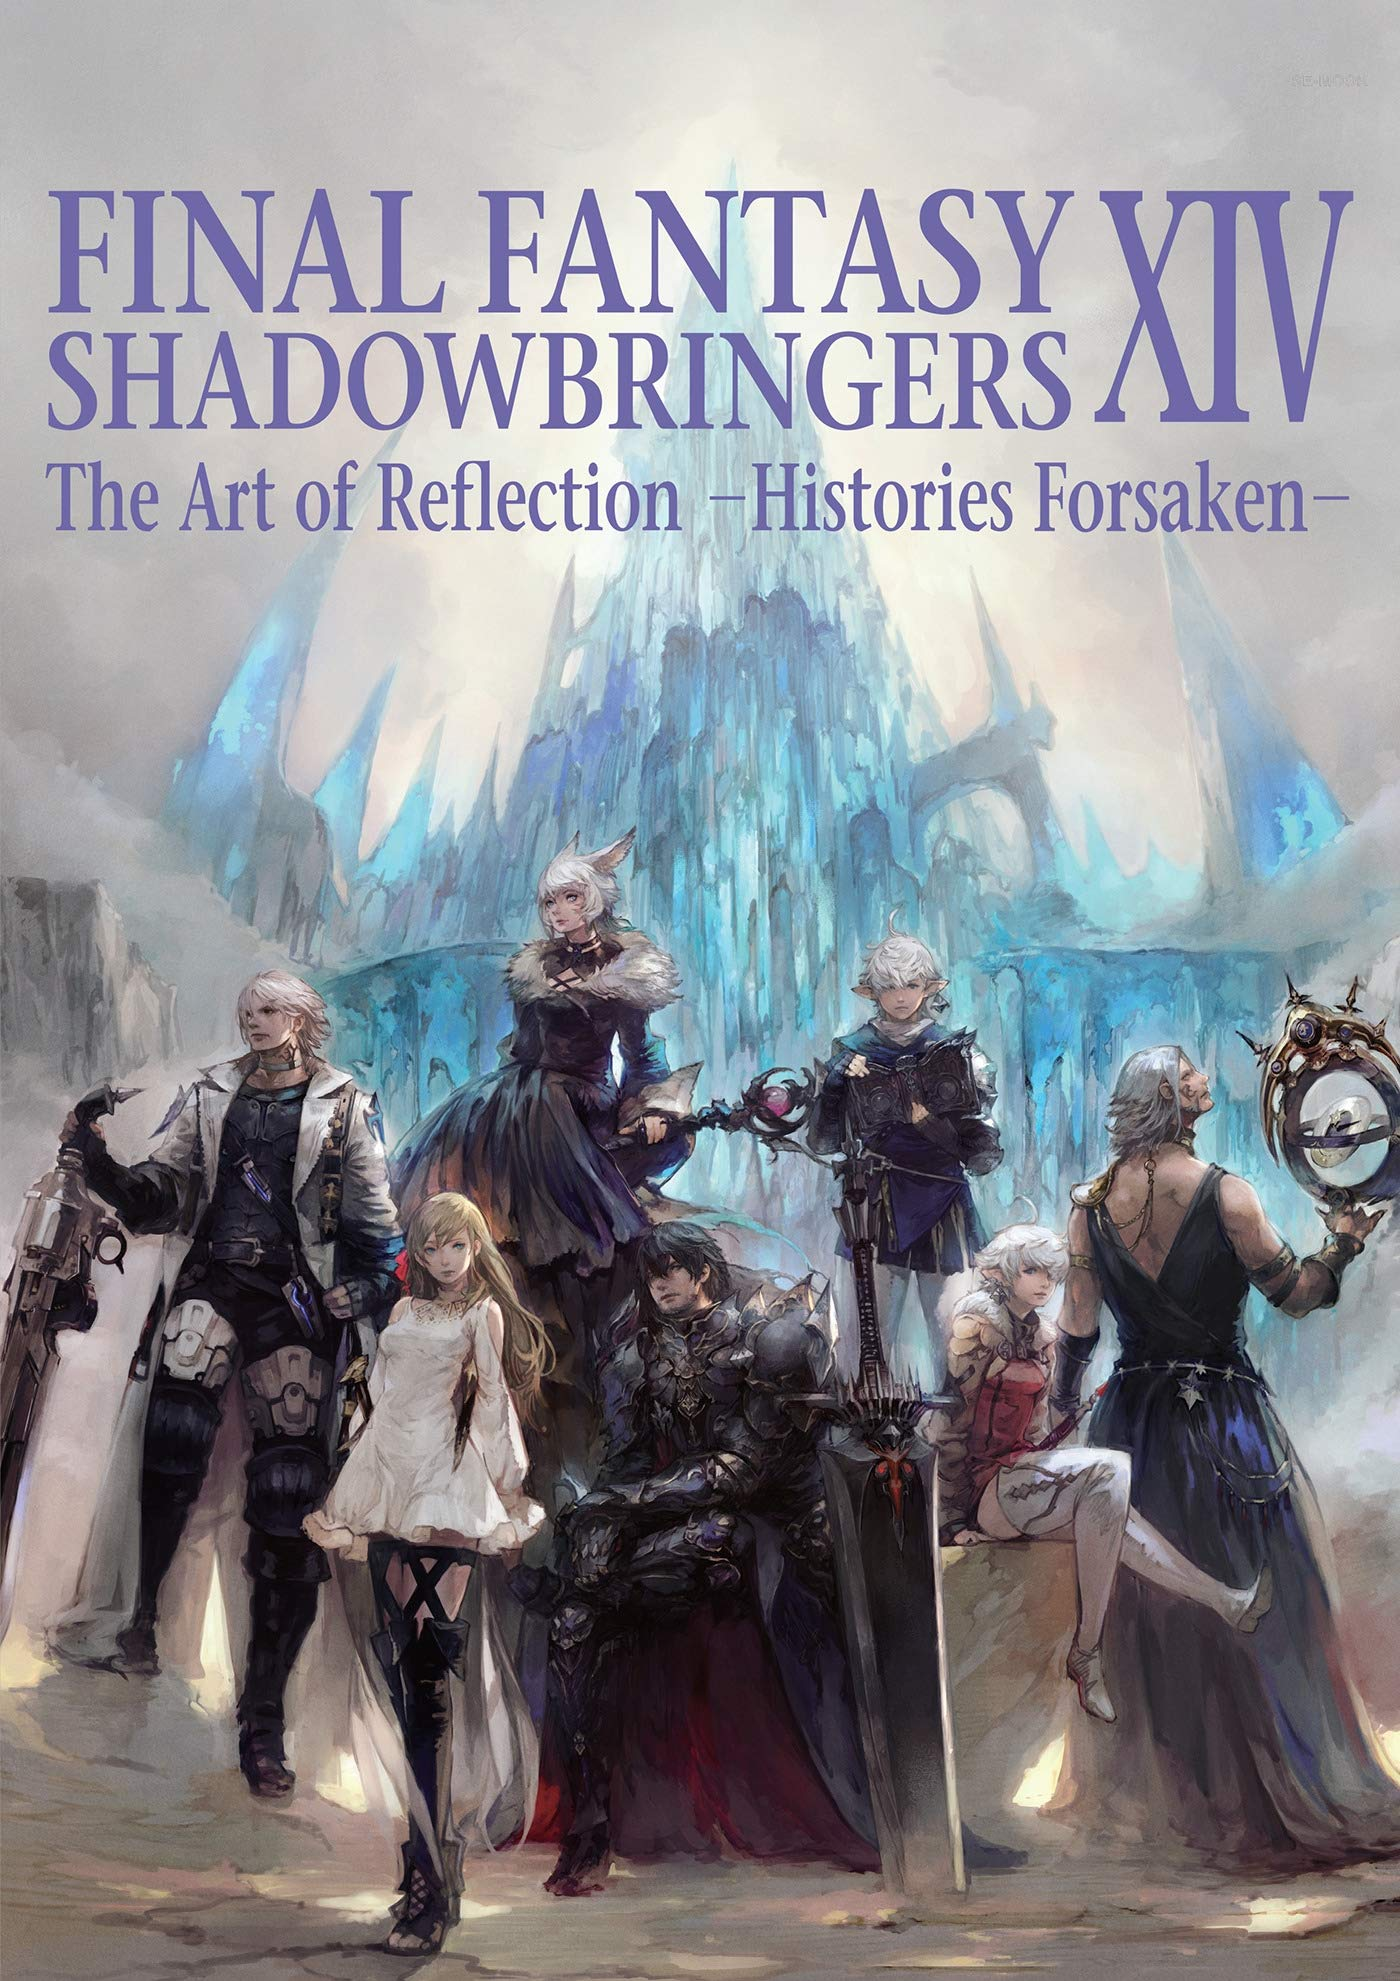 Final Fantasy XIV: Shadowbringers — The Art of Reflection -Histories Forsaken-